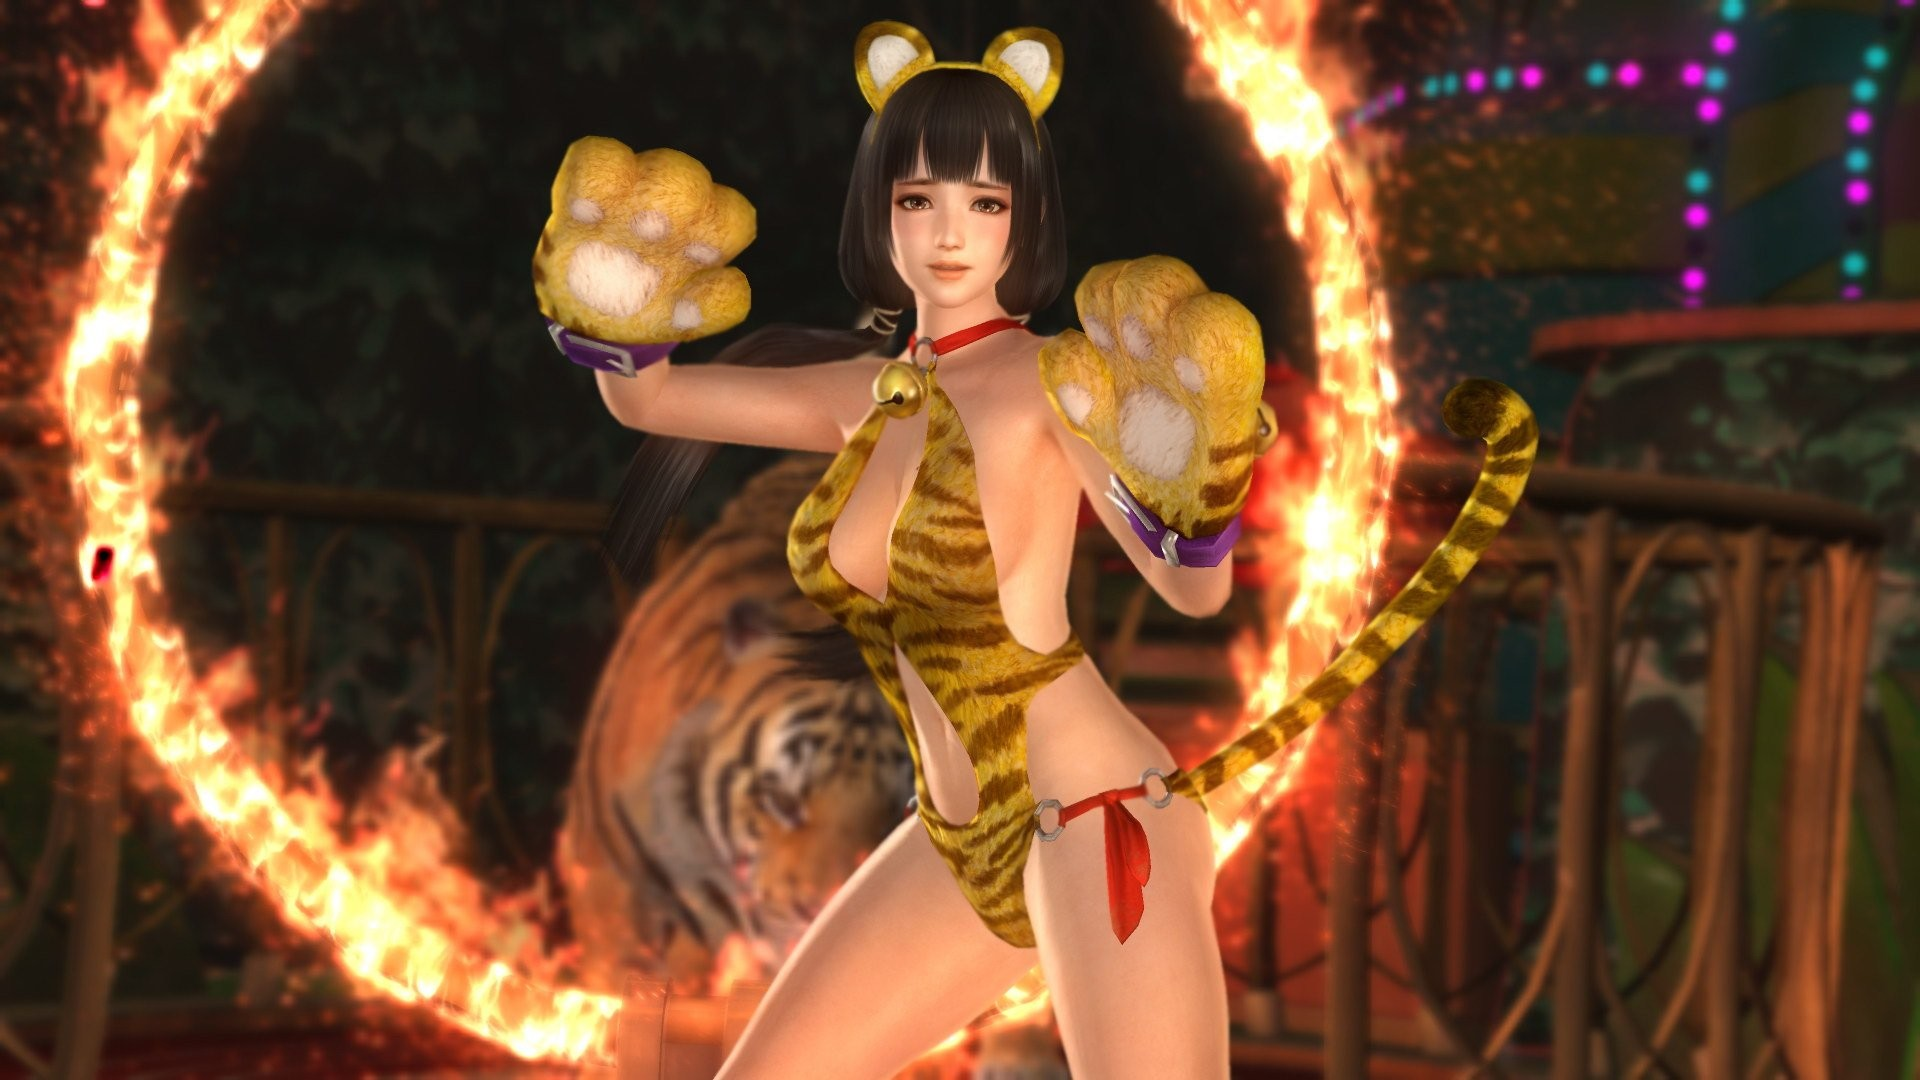 Mod nude warriors orochi 2 pc hentia toons